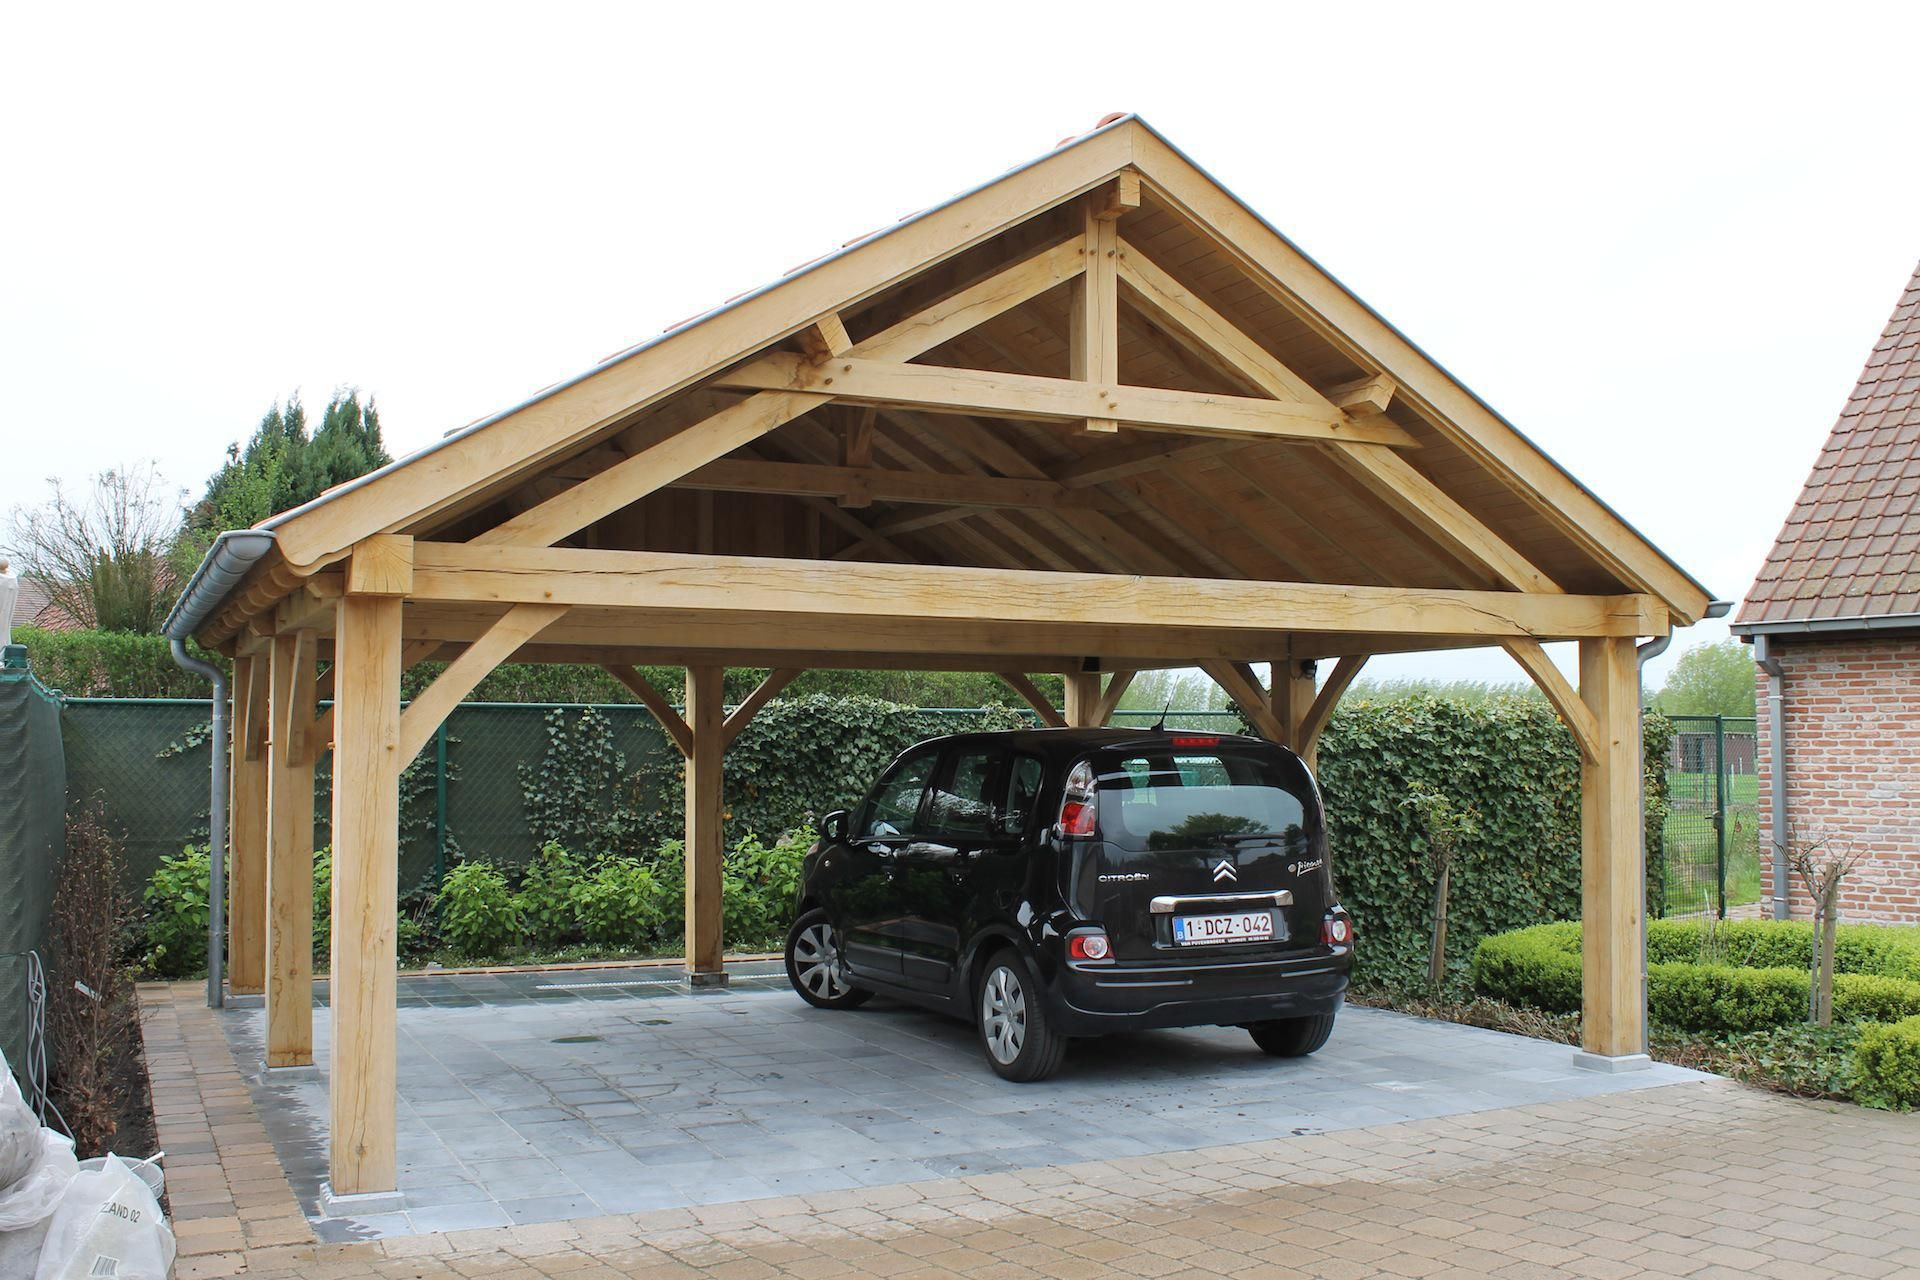 Design Carports Wood Carport Designs Best Carports Ideas New Home